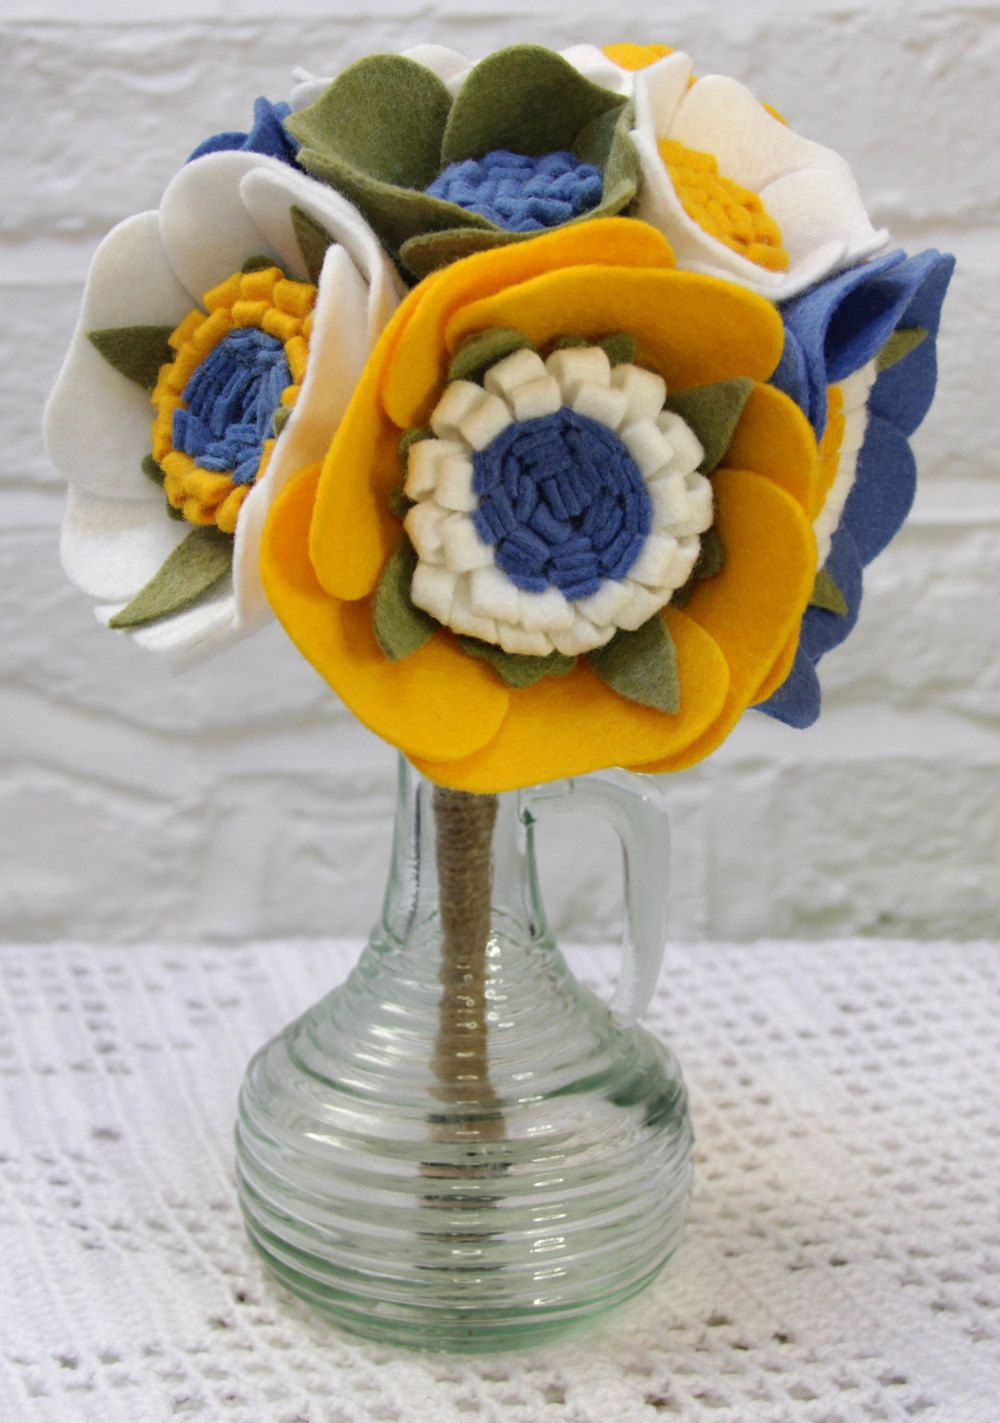 Felt flower bouquet scandinavian blue and yellow 3500 via etsy felt flower bouquet scandinavian blue and yellow 3500 via etsy izmirmasajfo